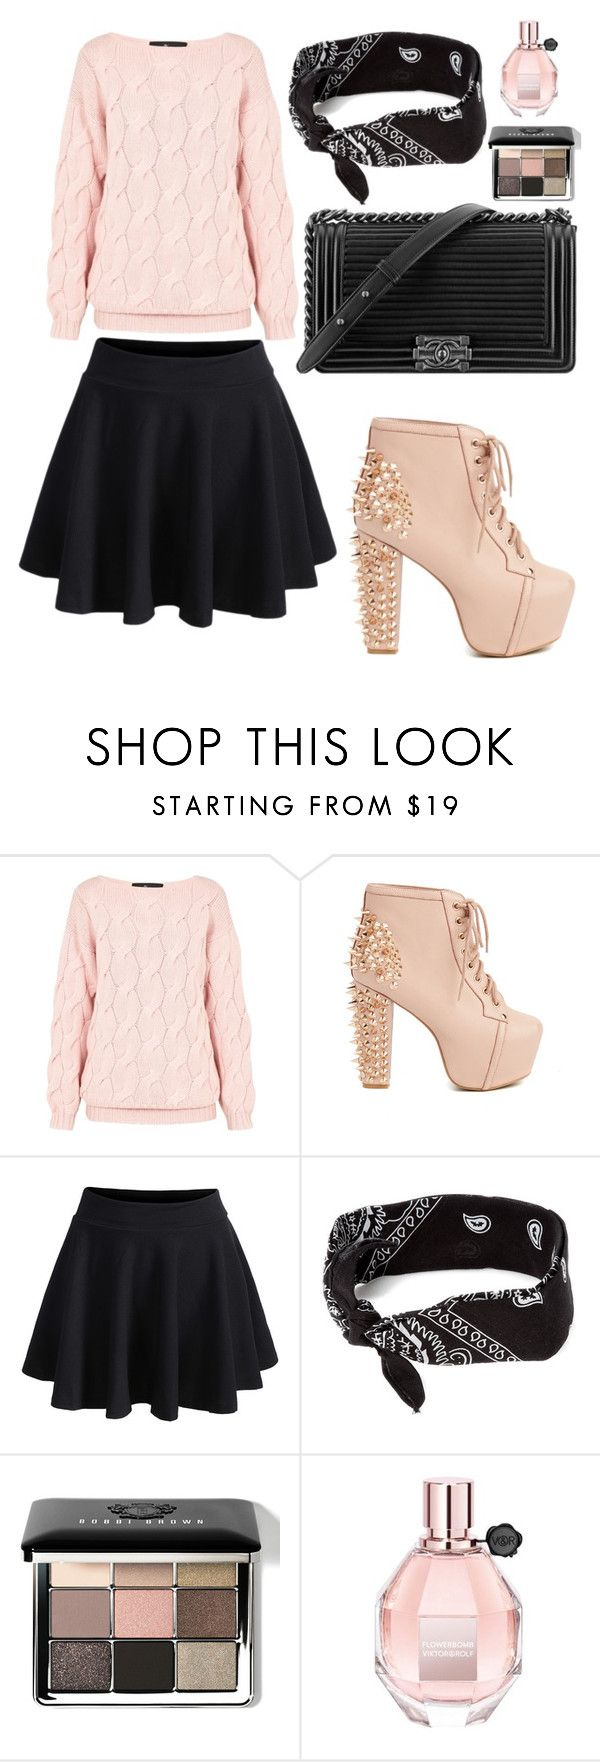 """Untitled #826"" by mala-palcica ❤ liked on Polyvore featuring AV by Adriana Voloshchuk, Jeffrey Campbell, Chanel, claire's, Bobbi Brown Cosmetics and Viktor & Rolf"